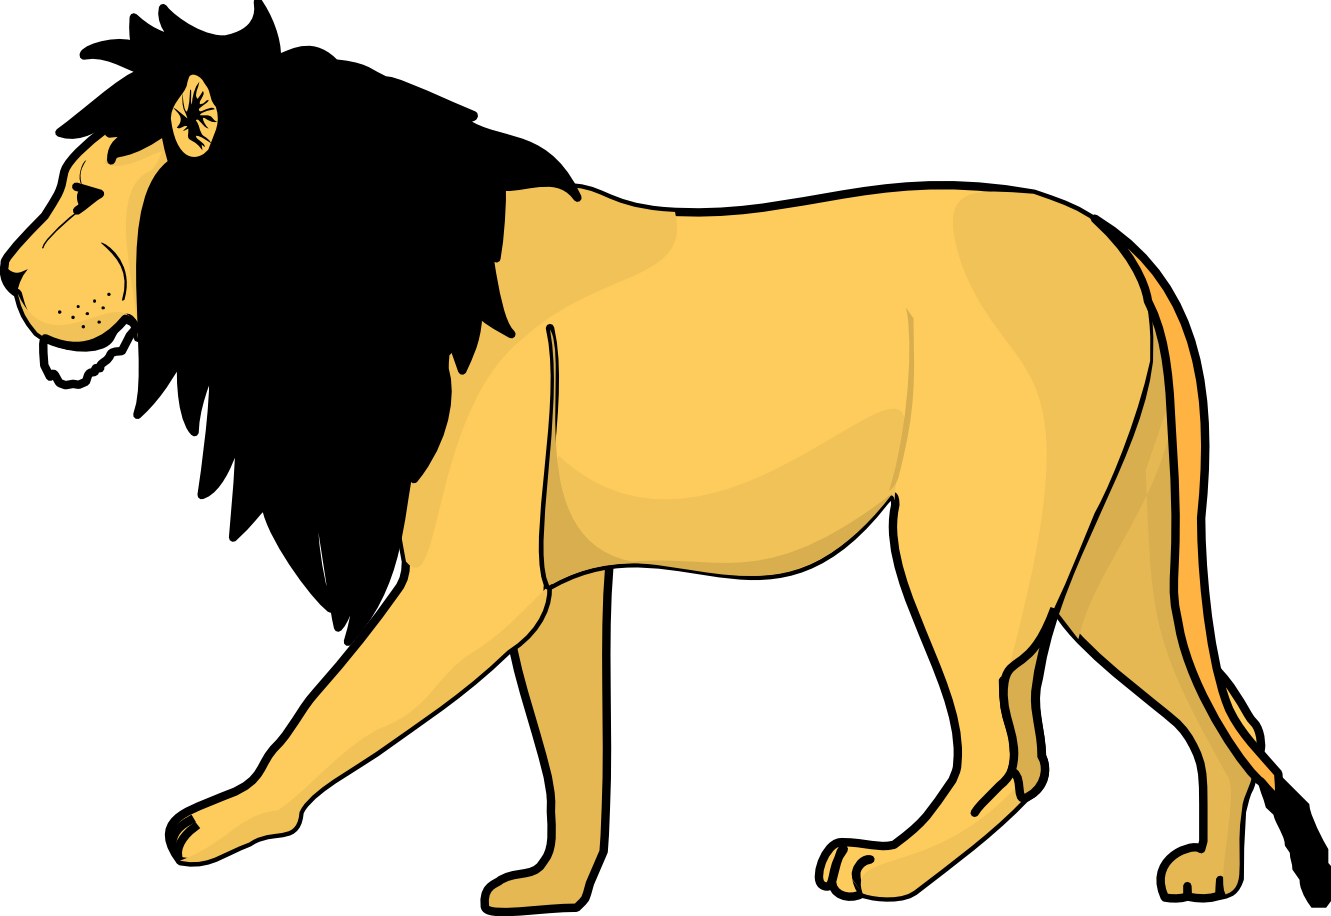 Lion clipart #4, Download drawings